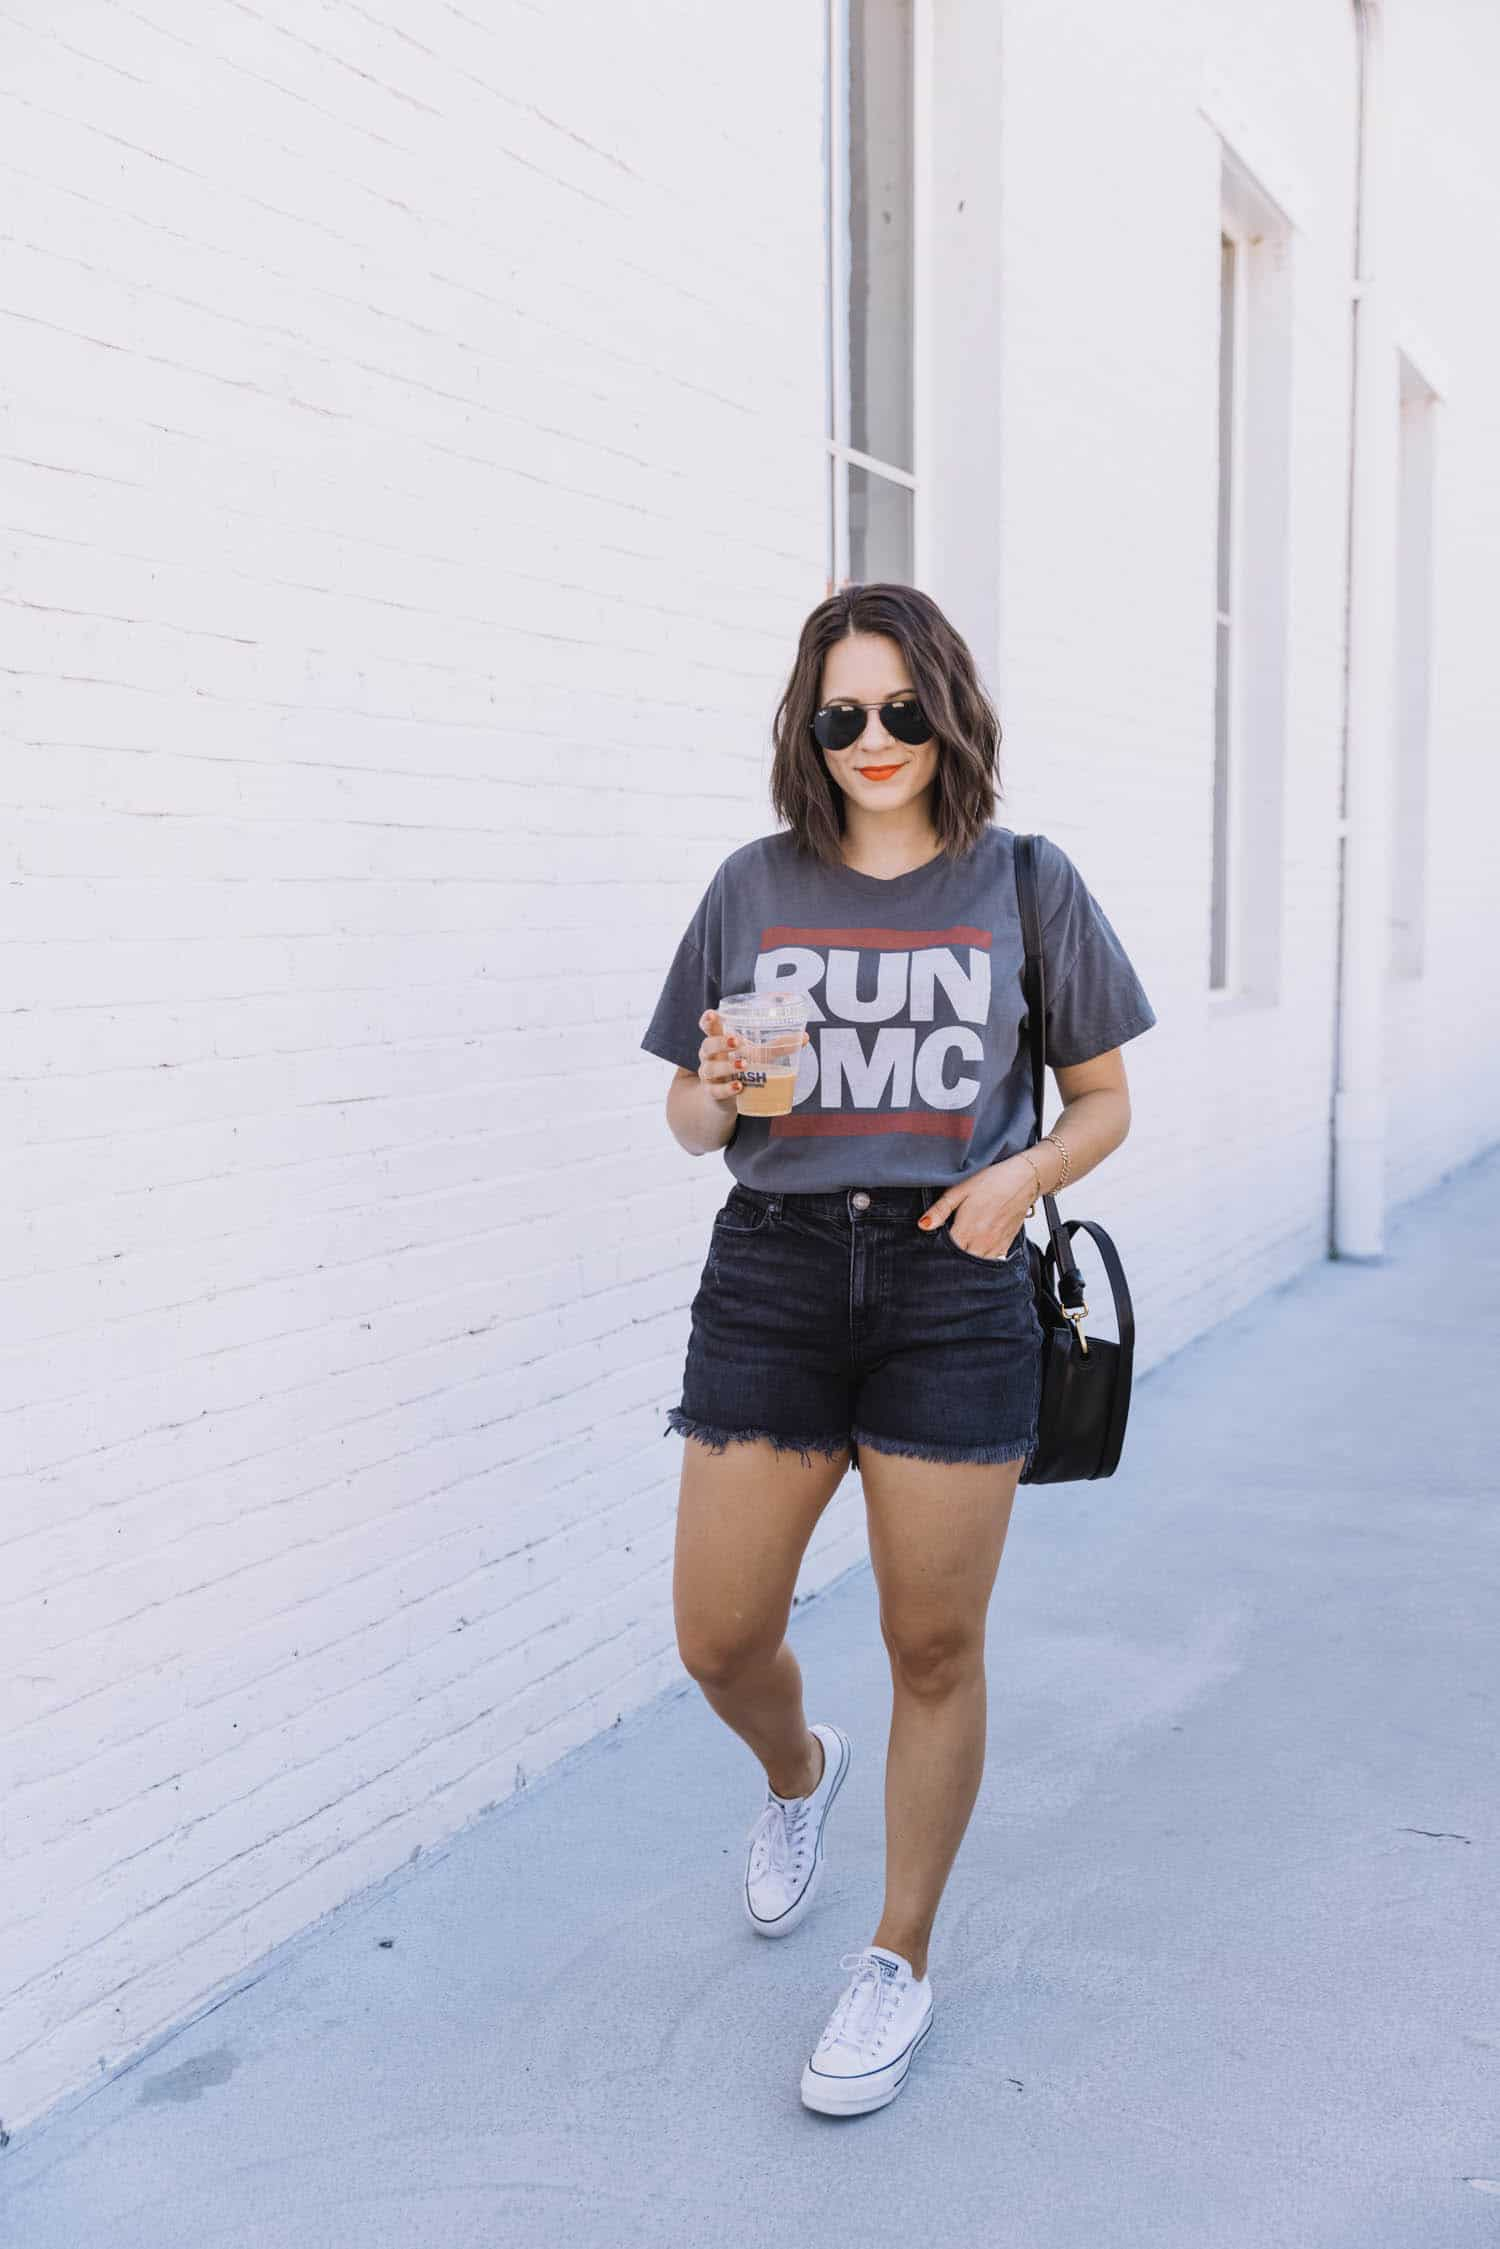 How to style graphic t-shirts